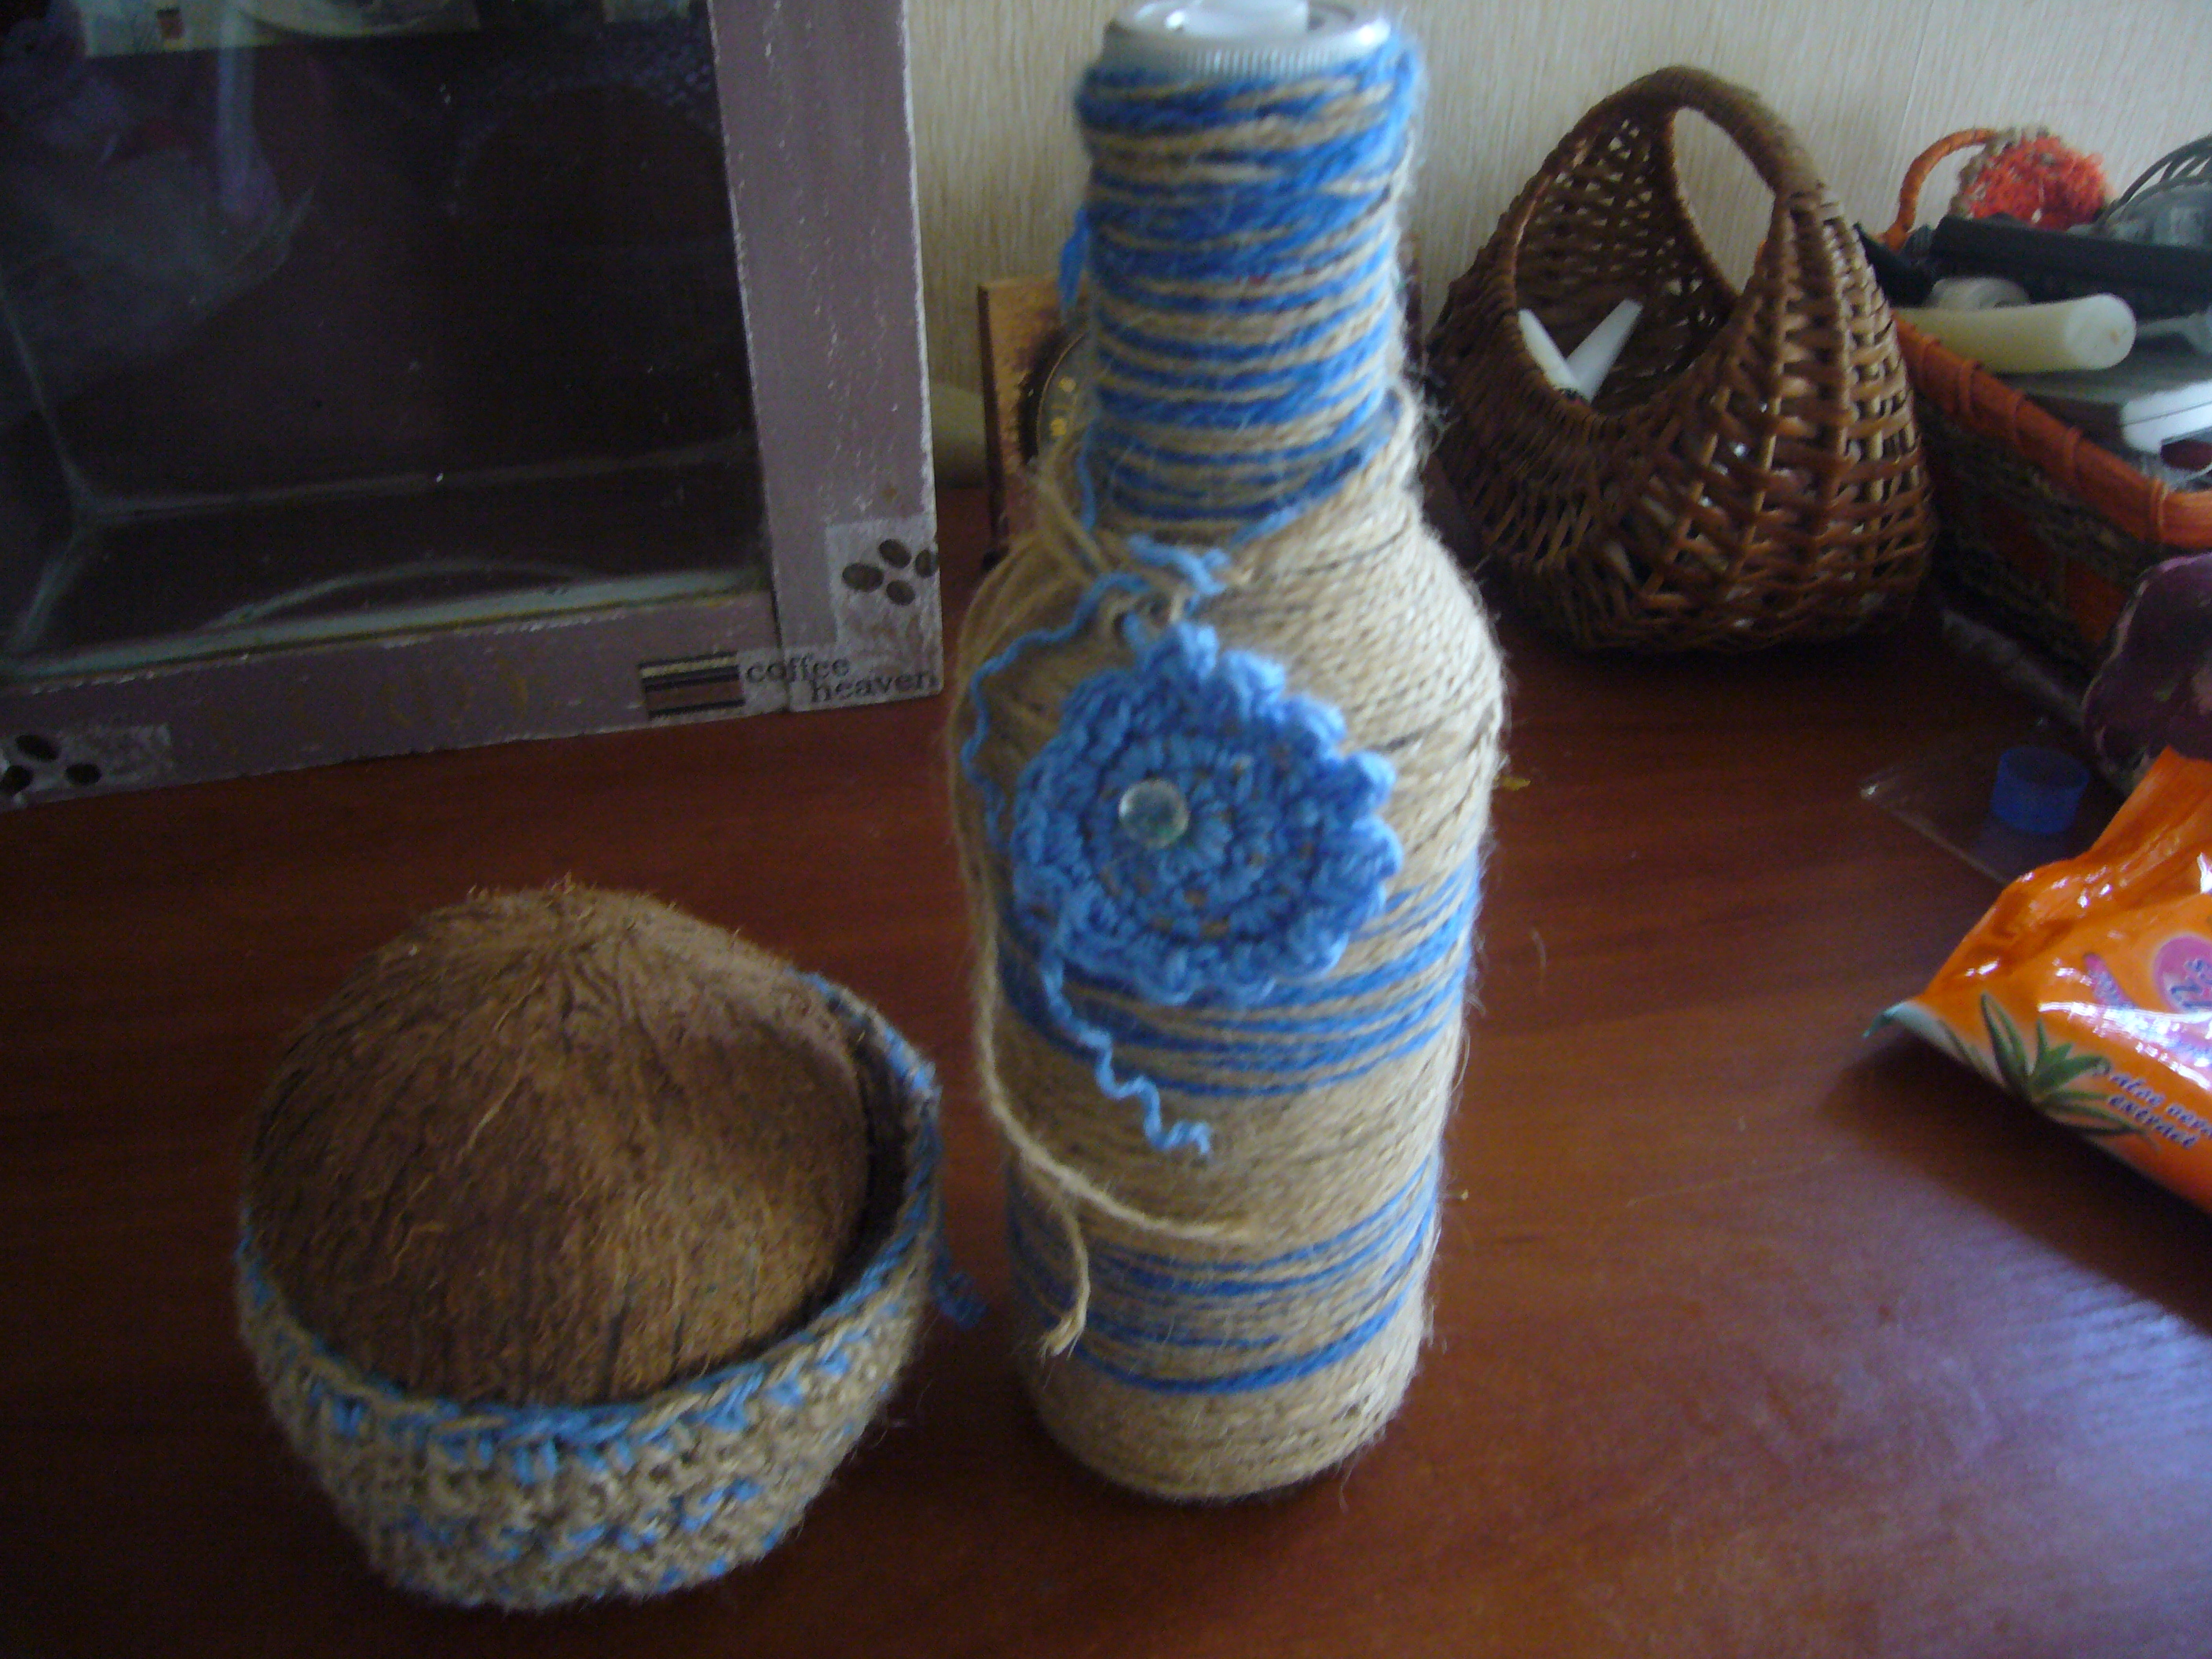 Coconut And Yarn Crafts Project Bottle Decor And Handmade Box Diy